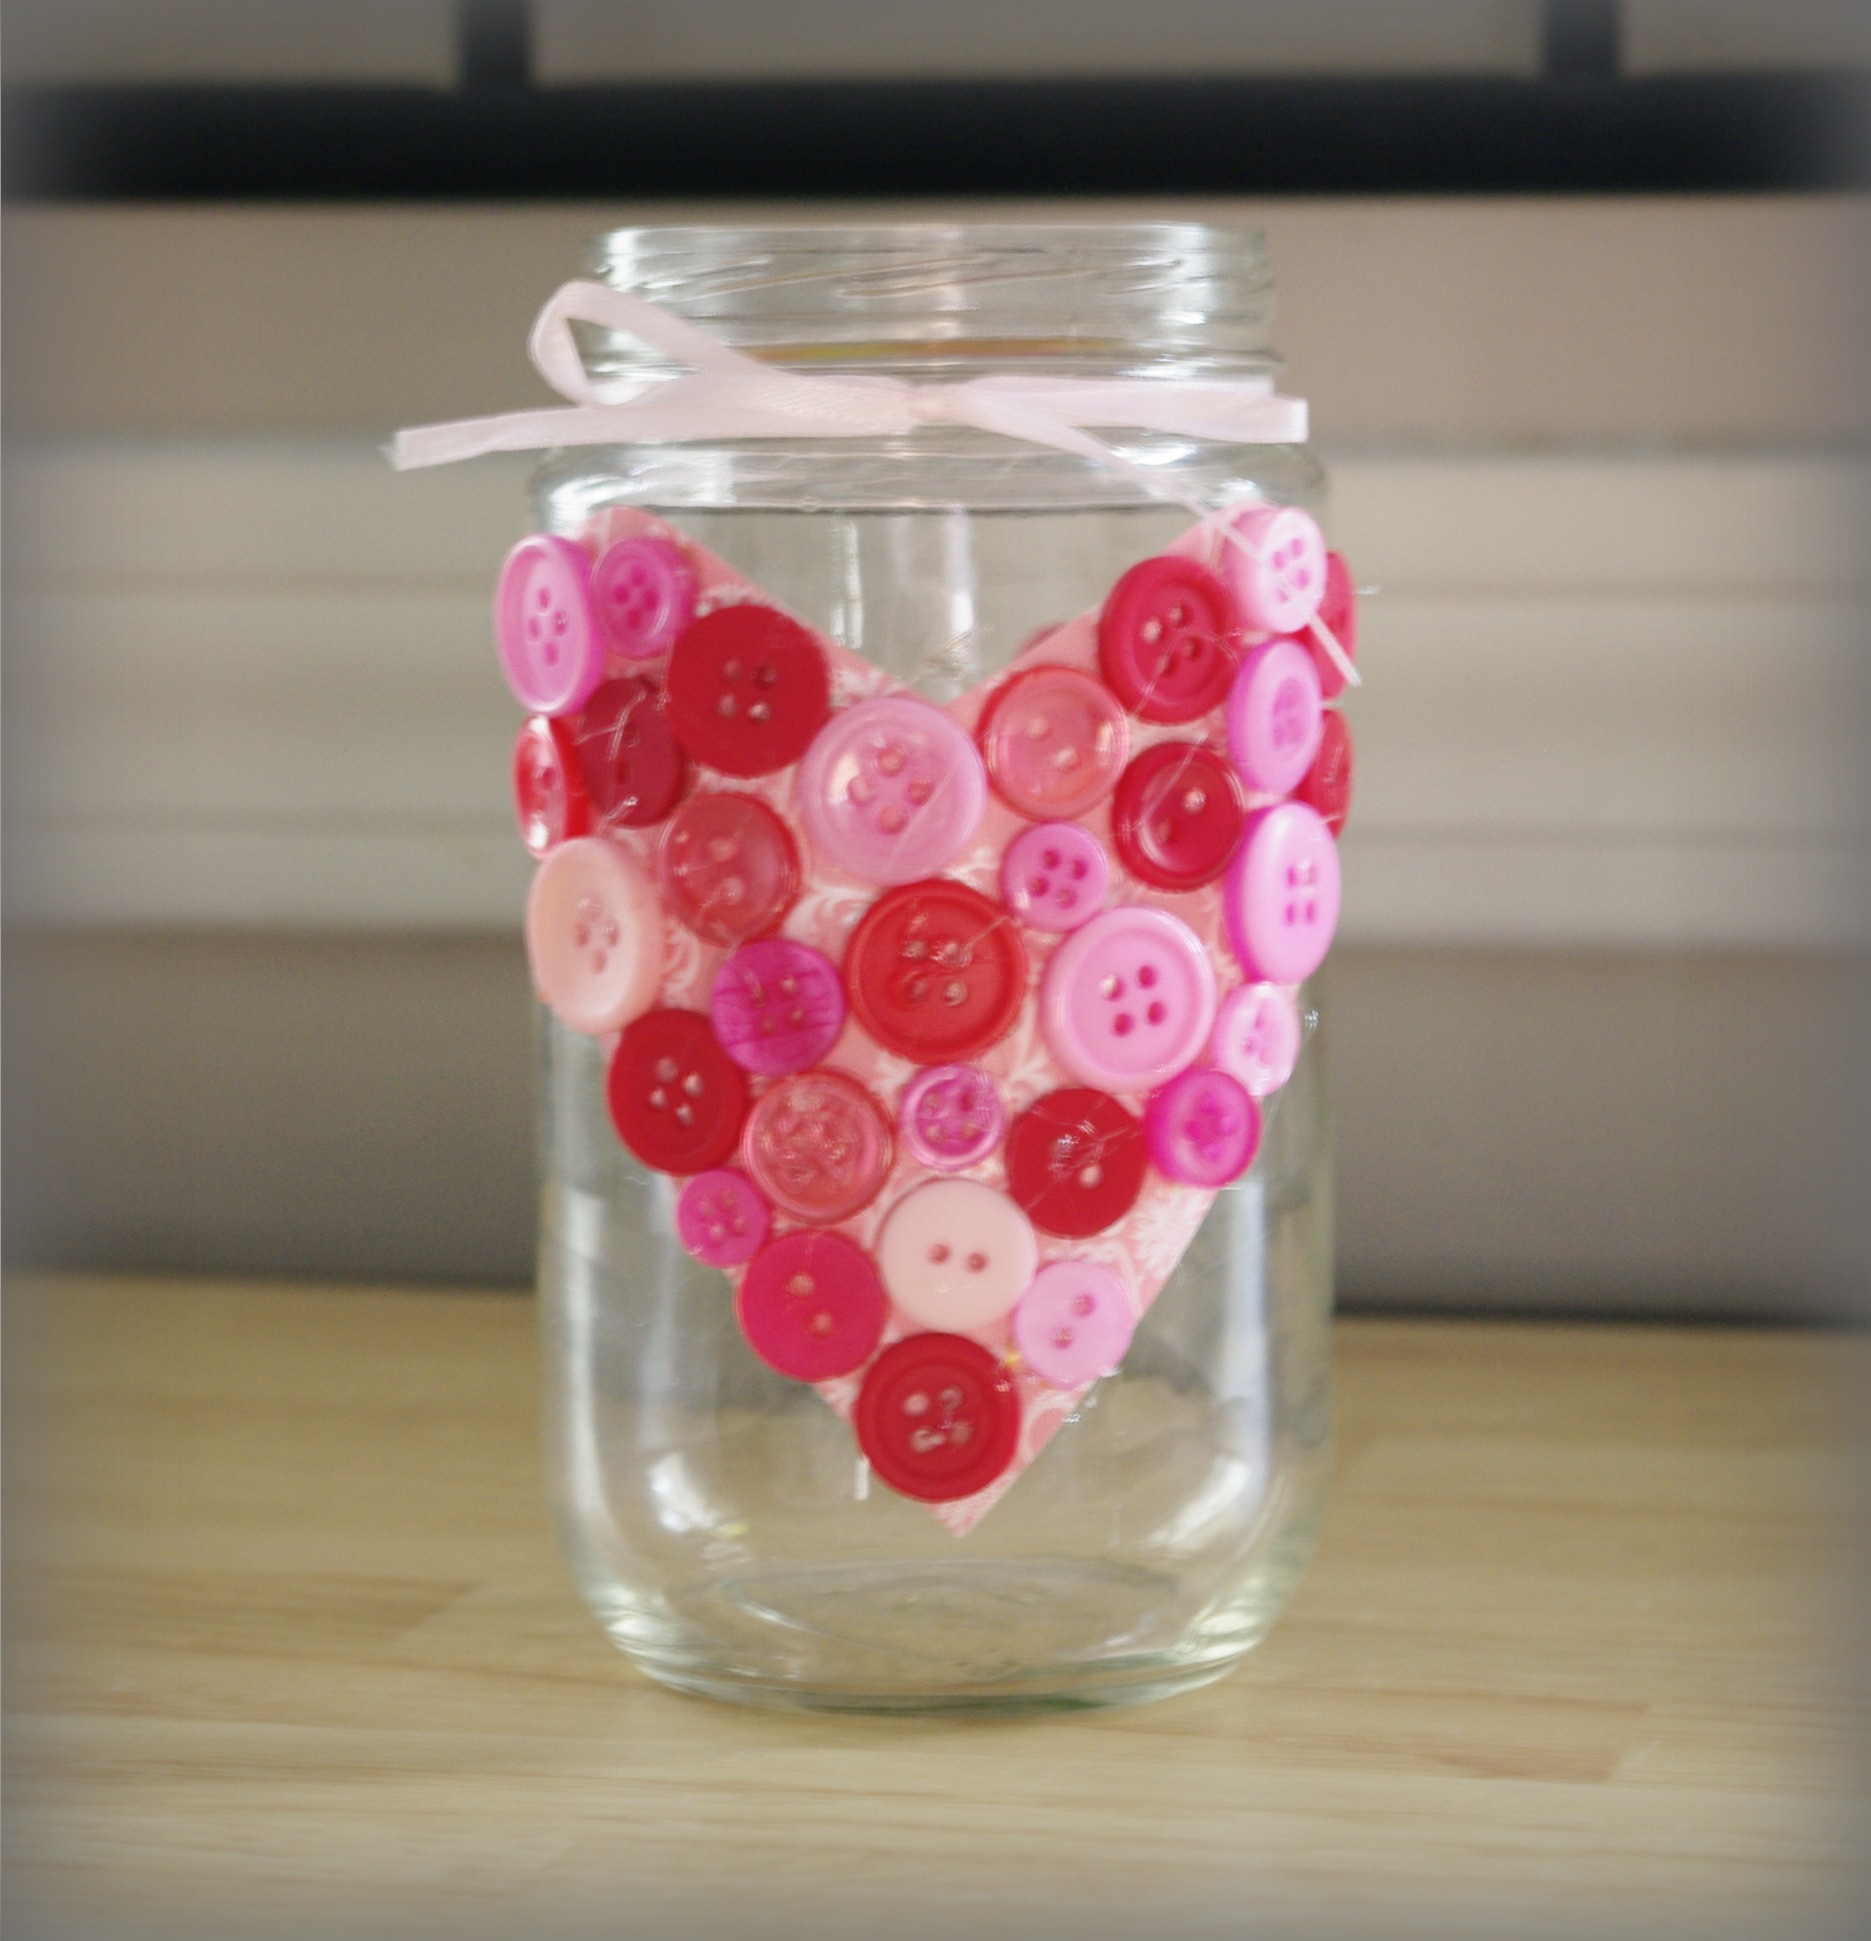 Save That Jar Glass Jar Craft Ideas Entirely Smitten